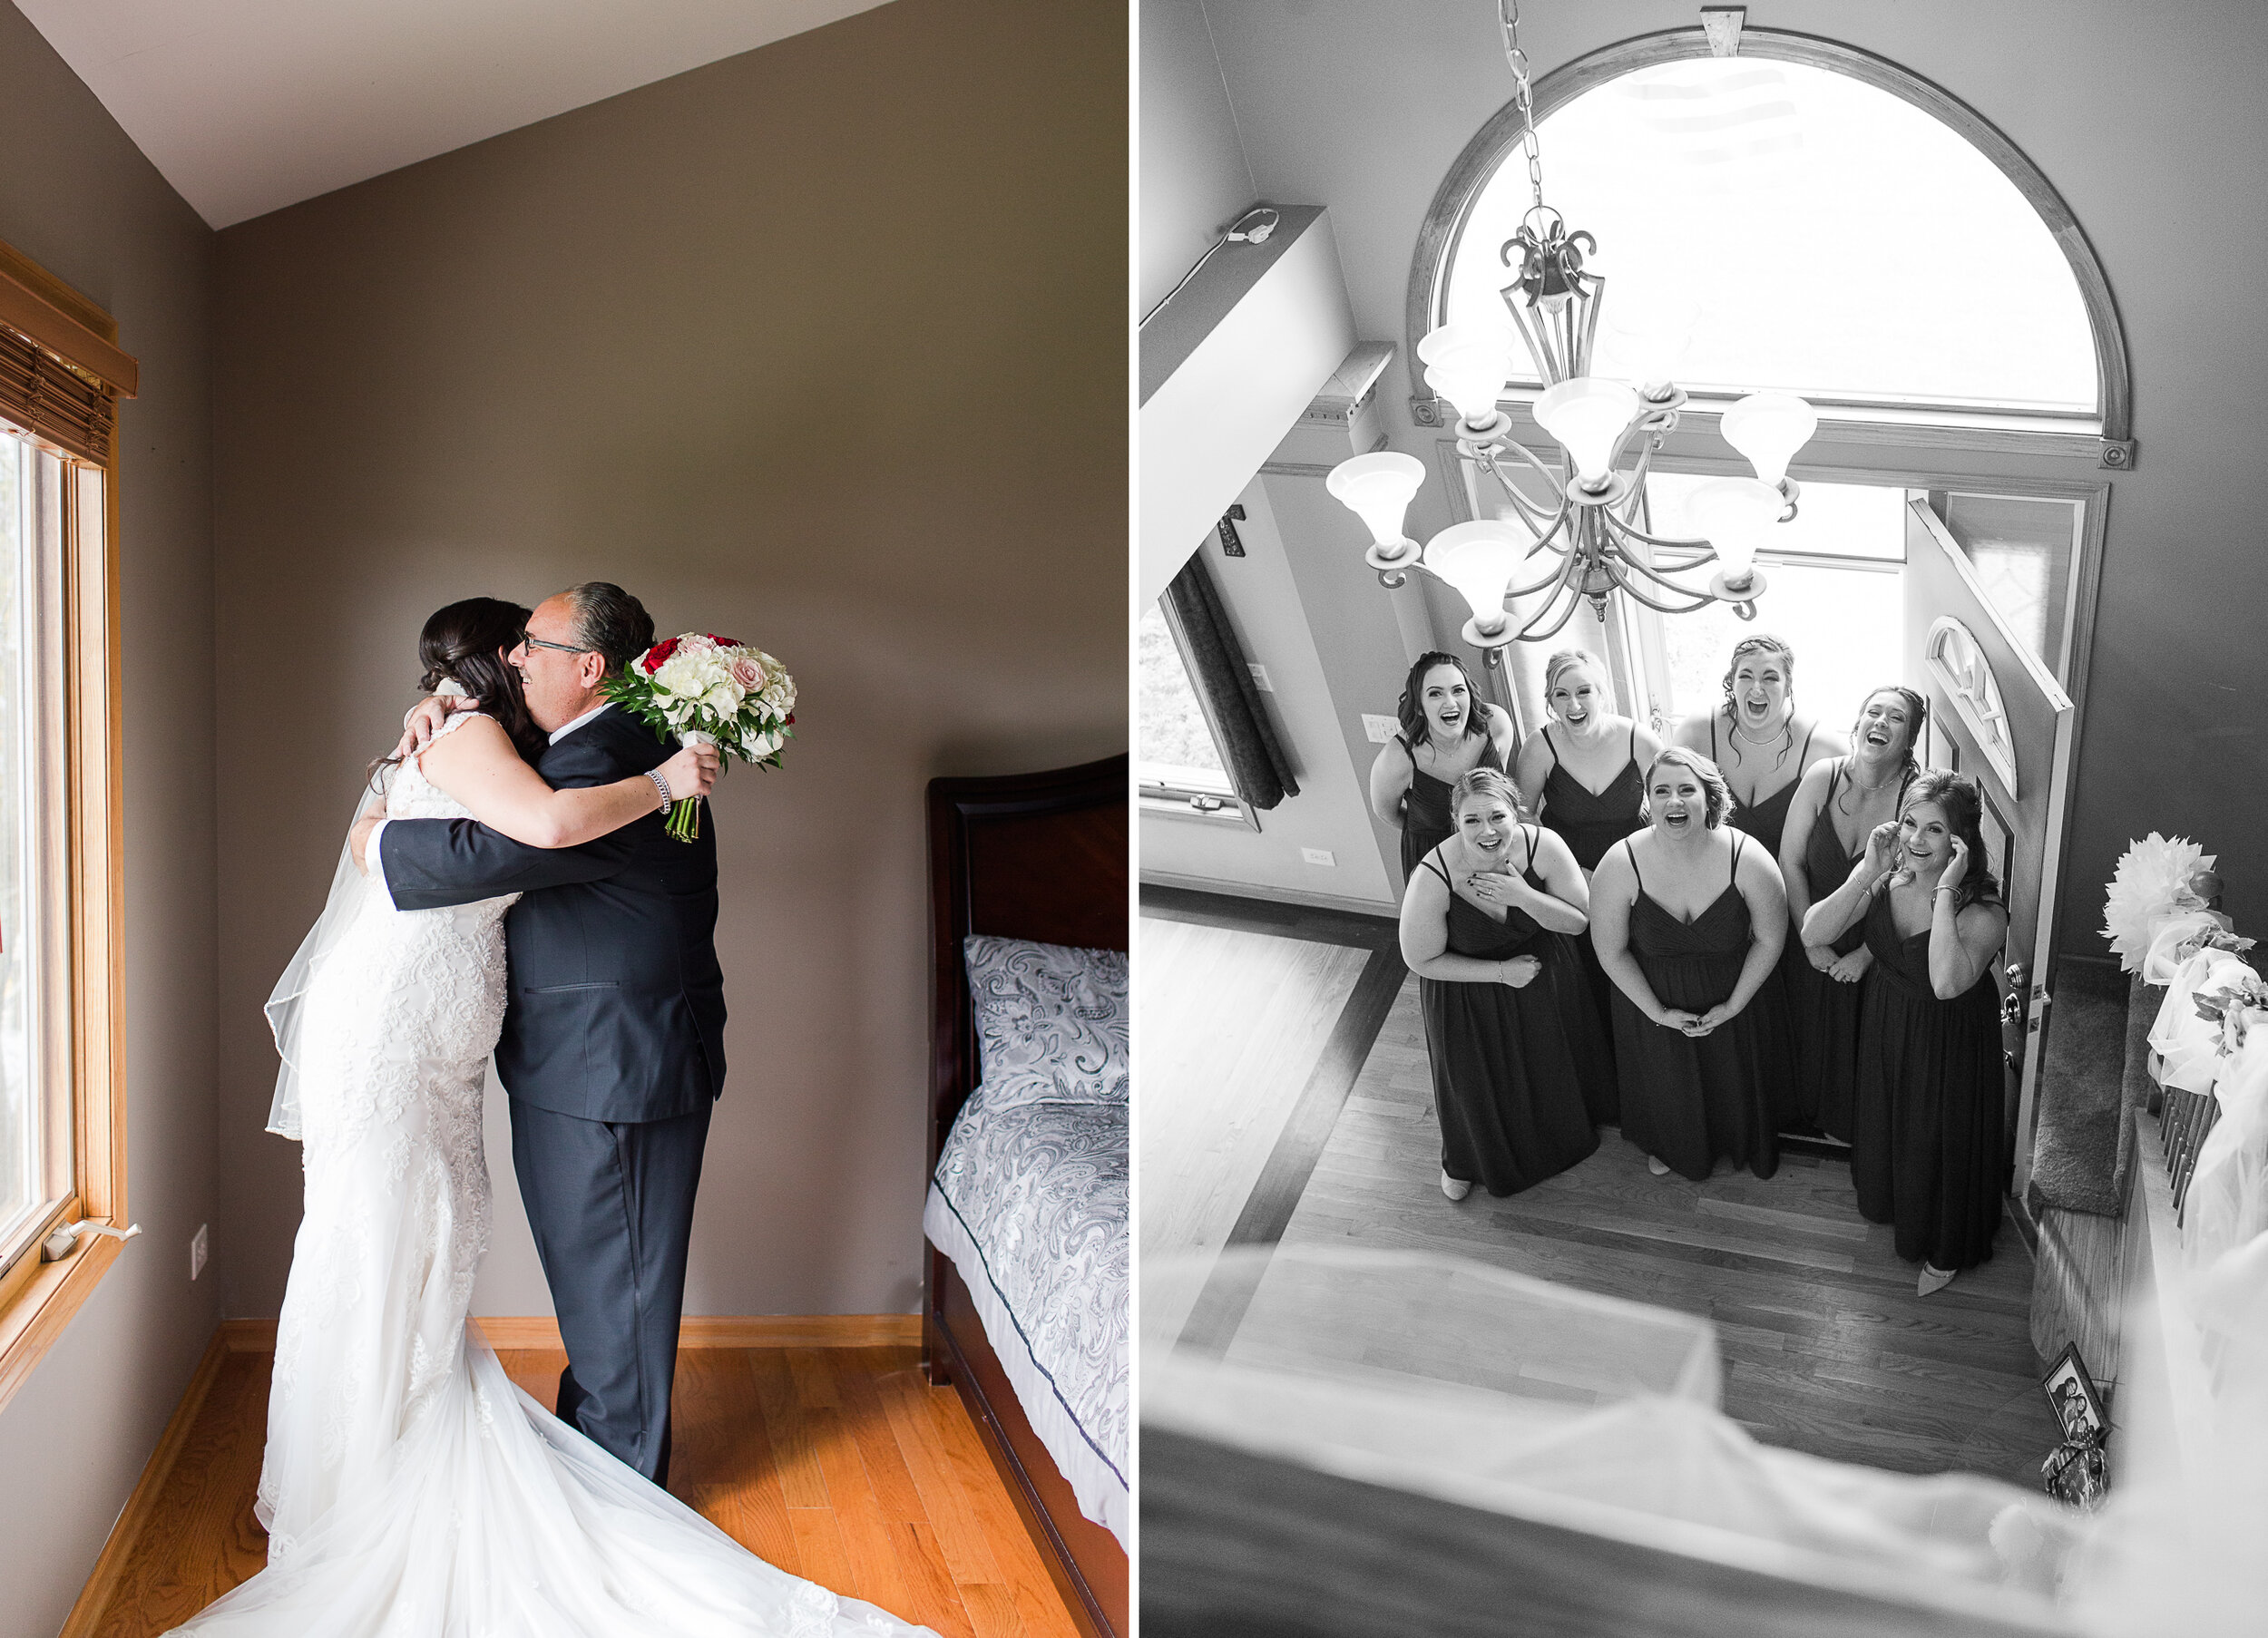 So many sweet moments — Danielle and her dad, Danielle and her bridesmaids, all seeing her for the first time!